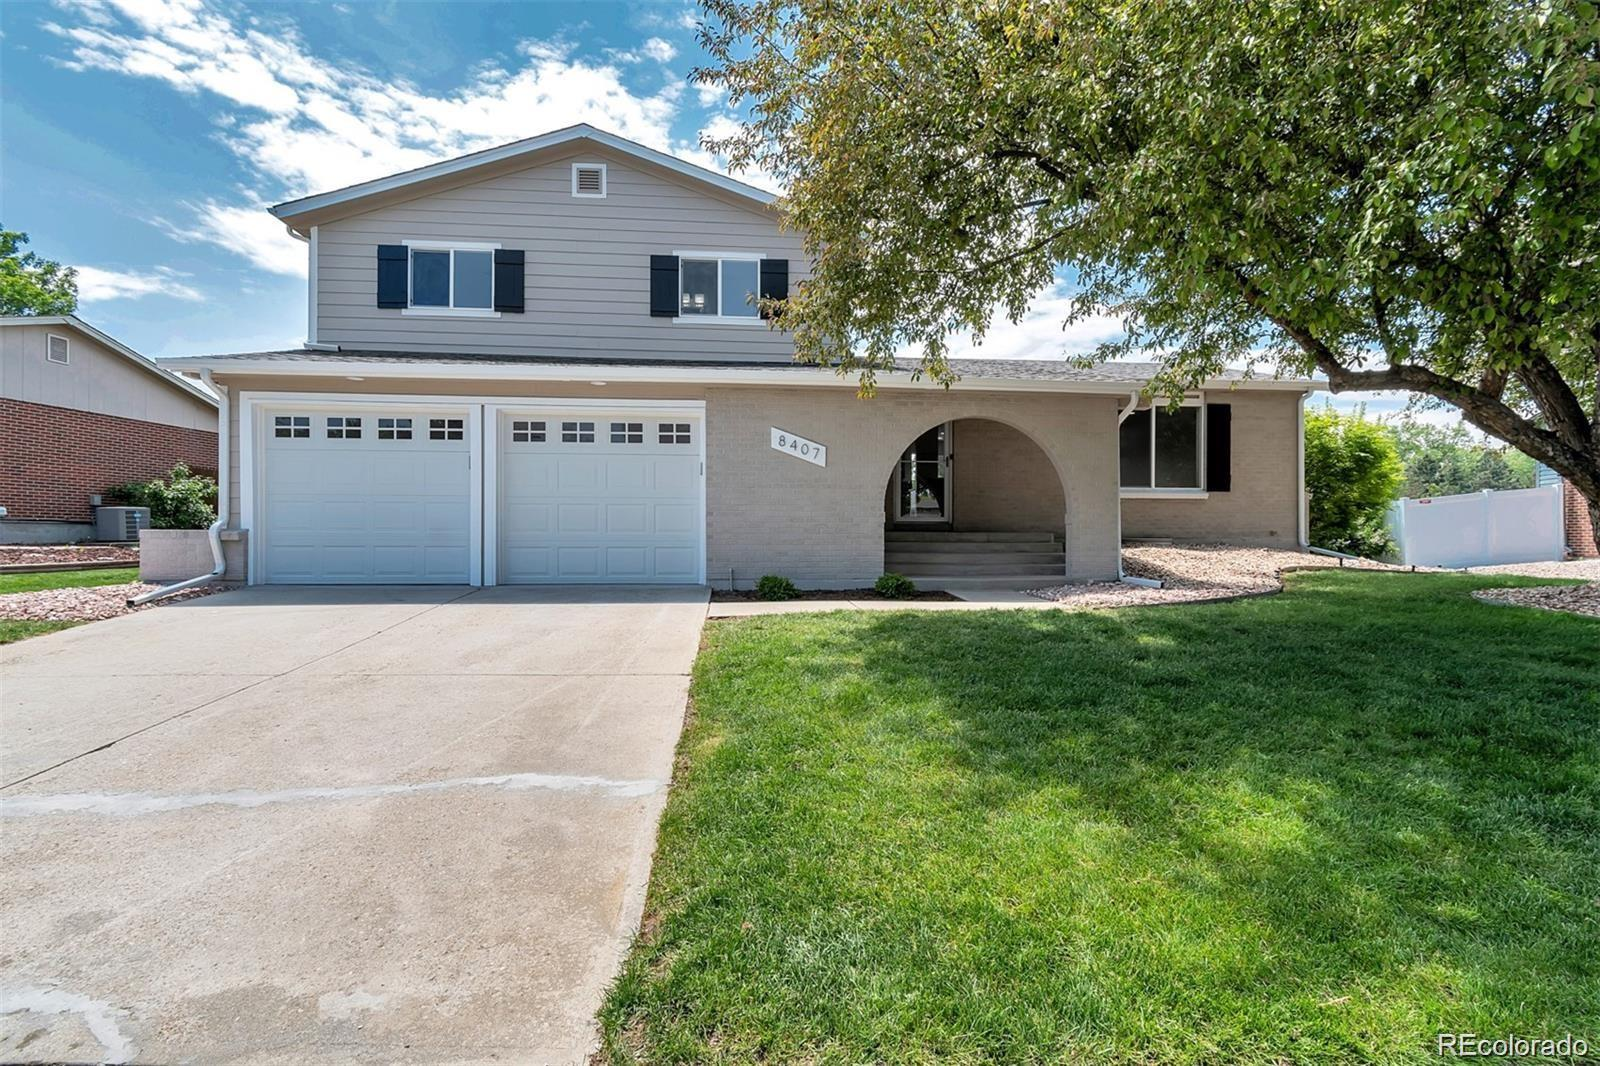 8407 Chase Drive, Arvada, CO 80003 - #: 1618770